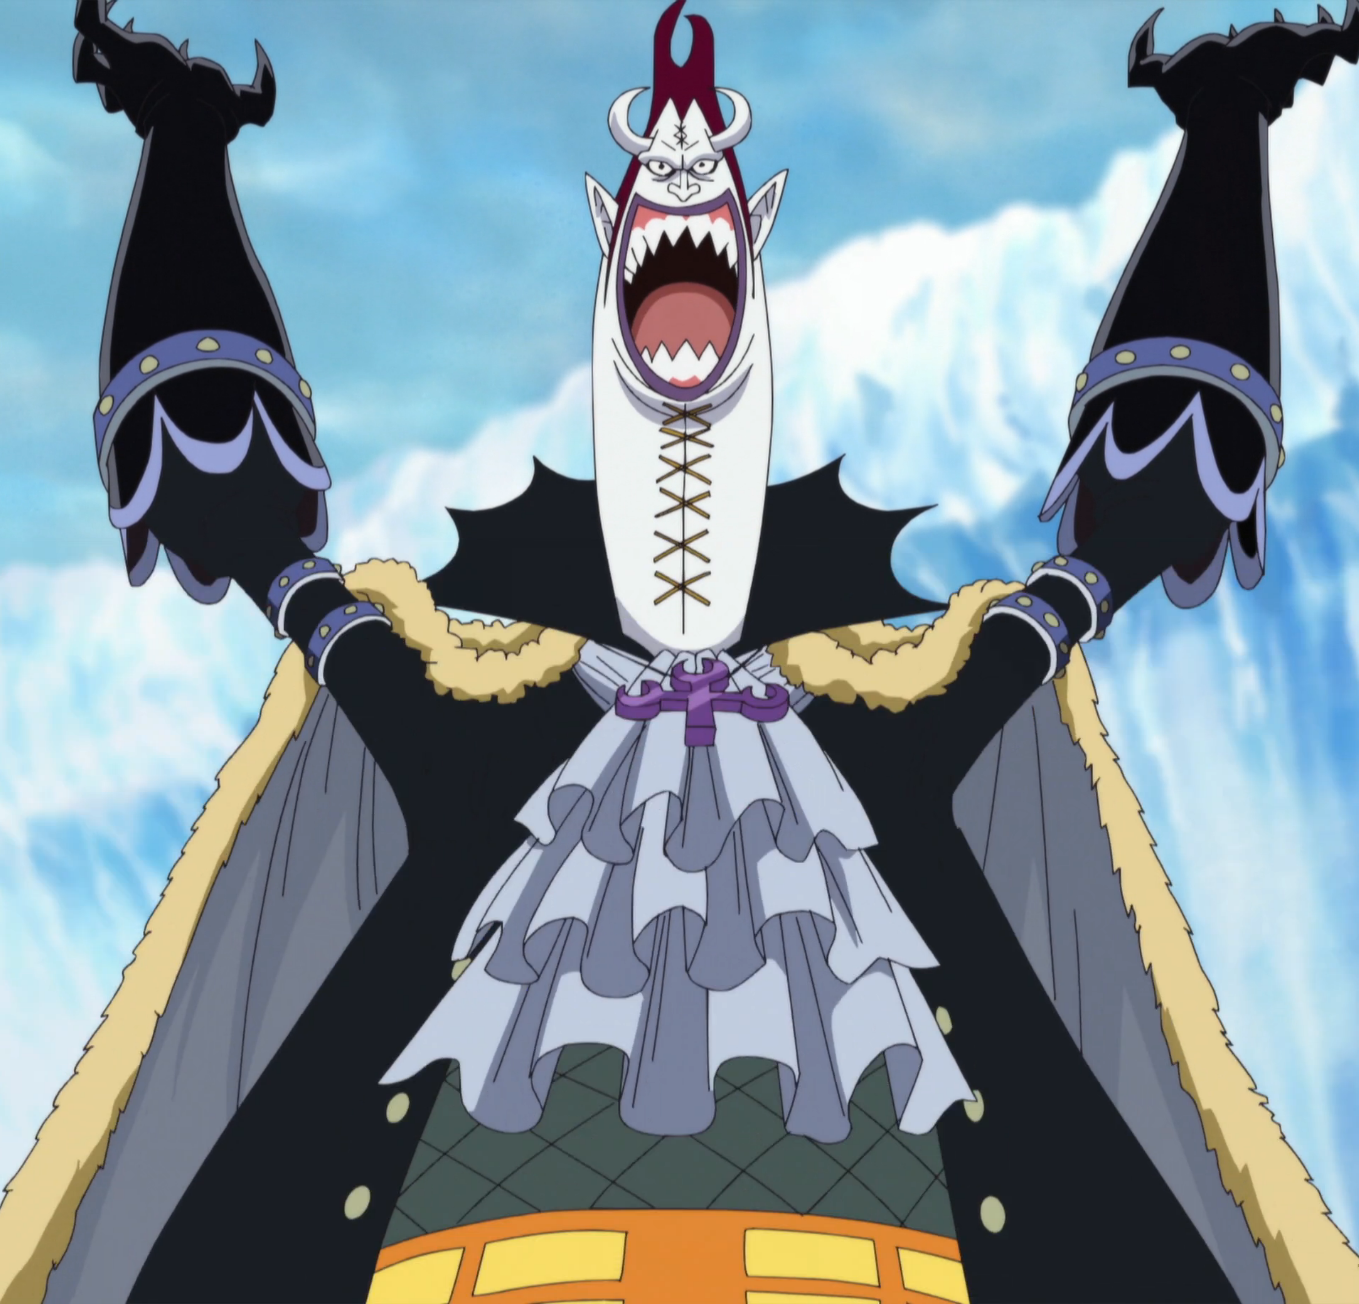 Gecko Moria | One Piece Wiki | FANDOM powered by Wikia